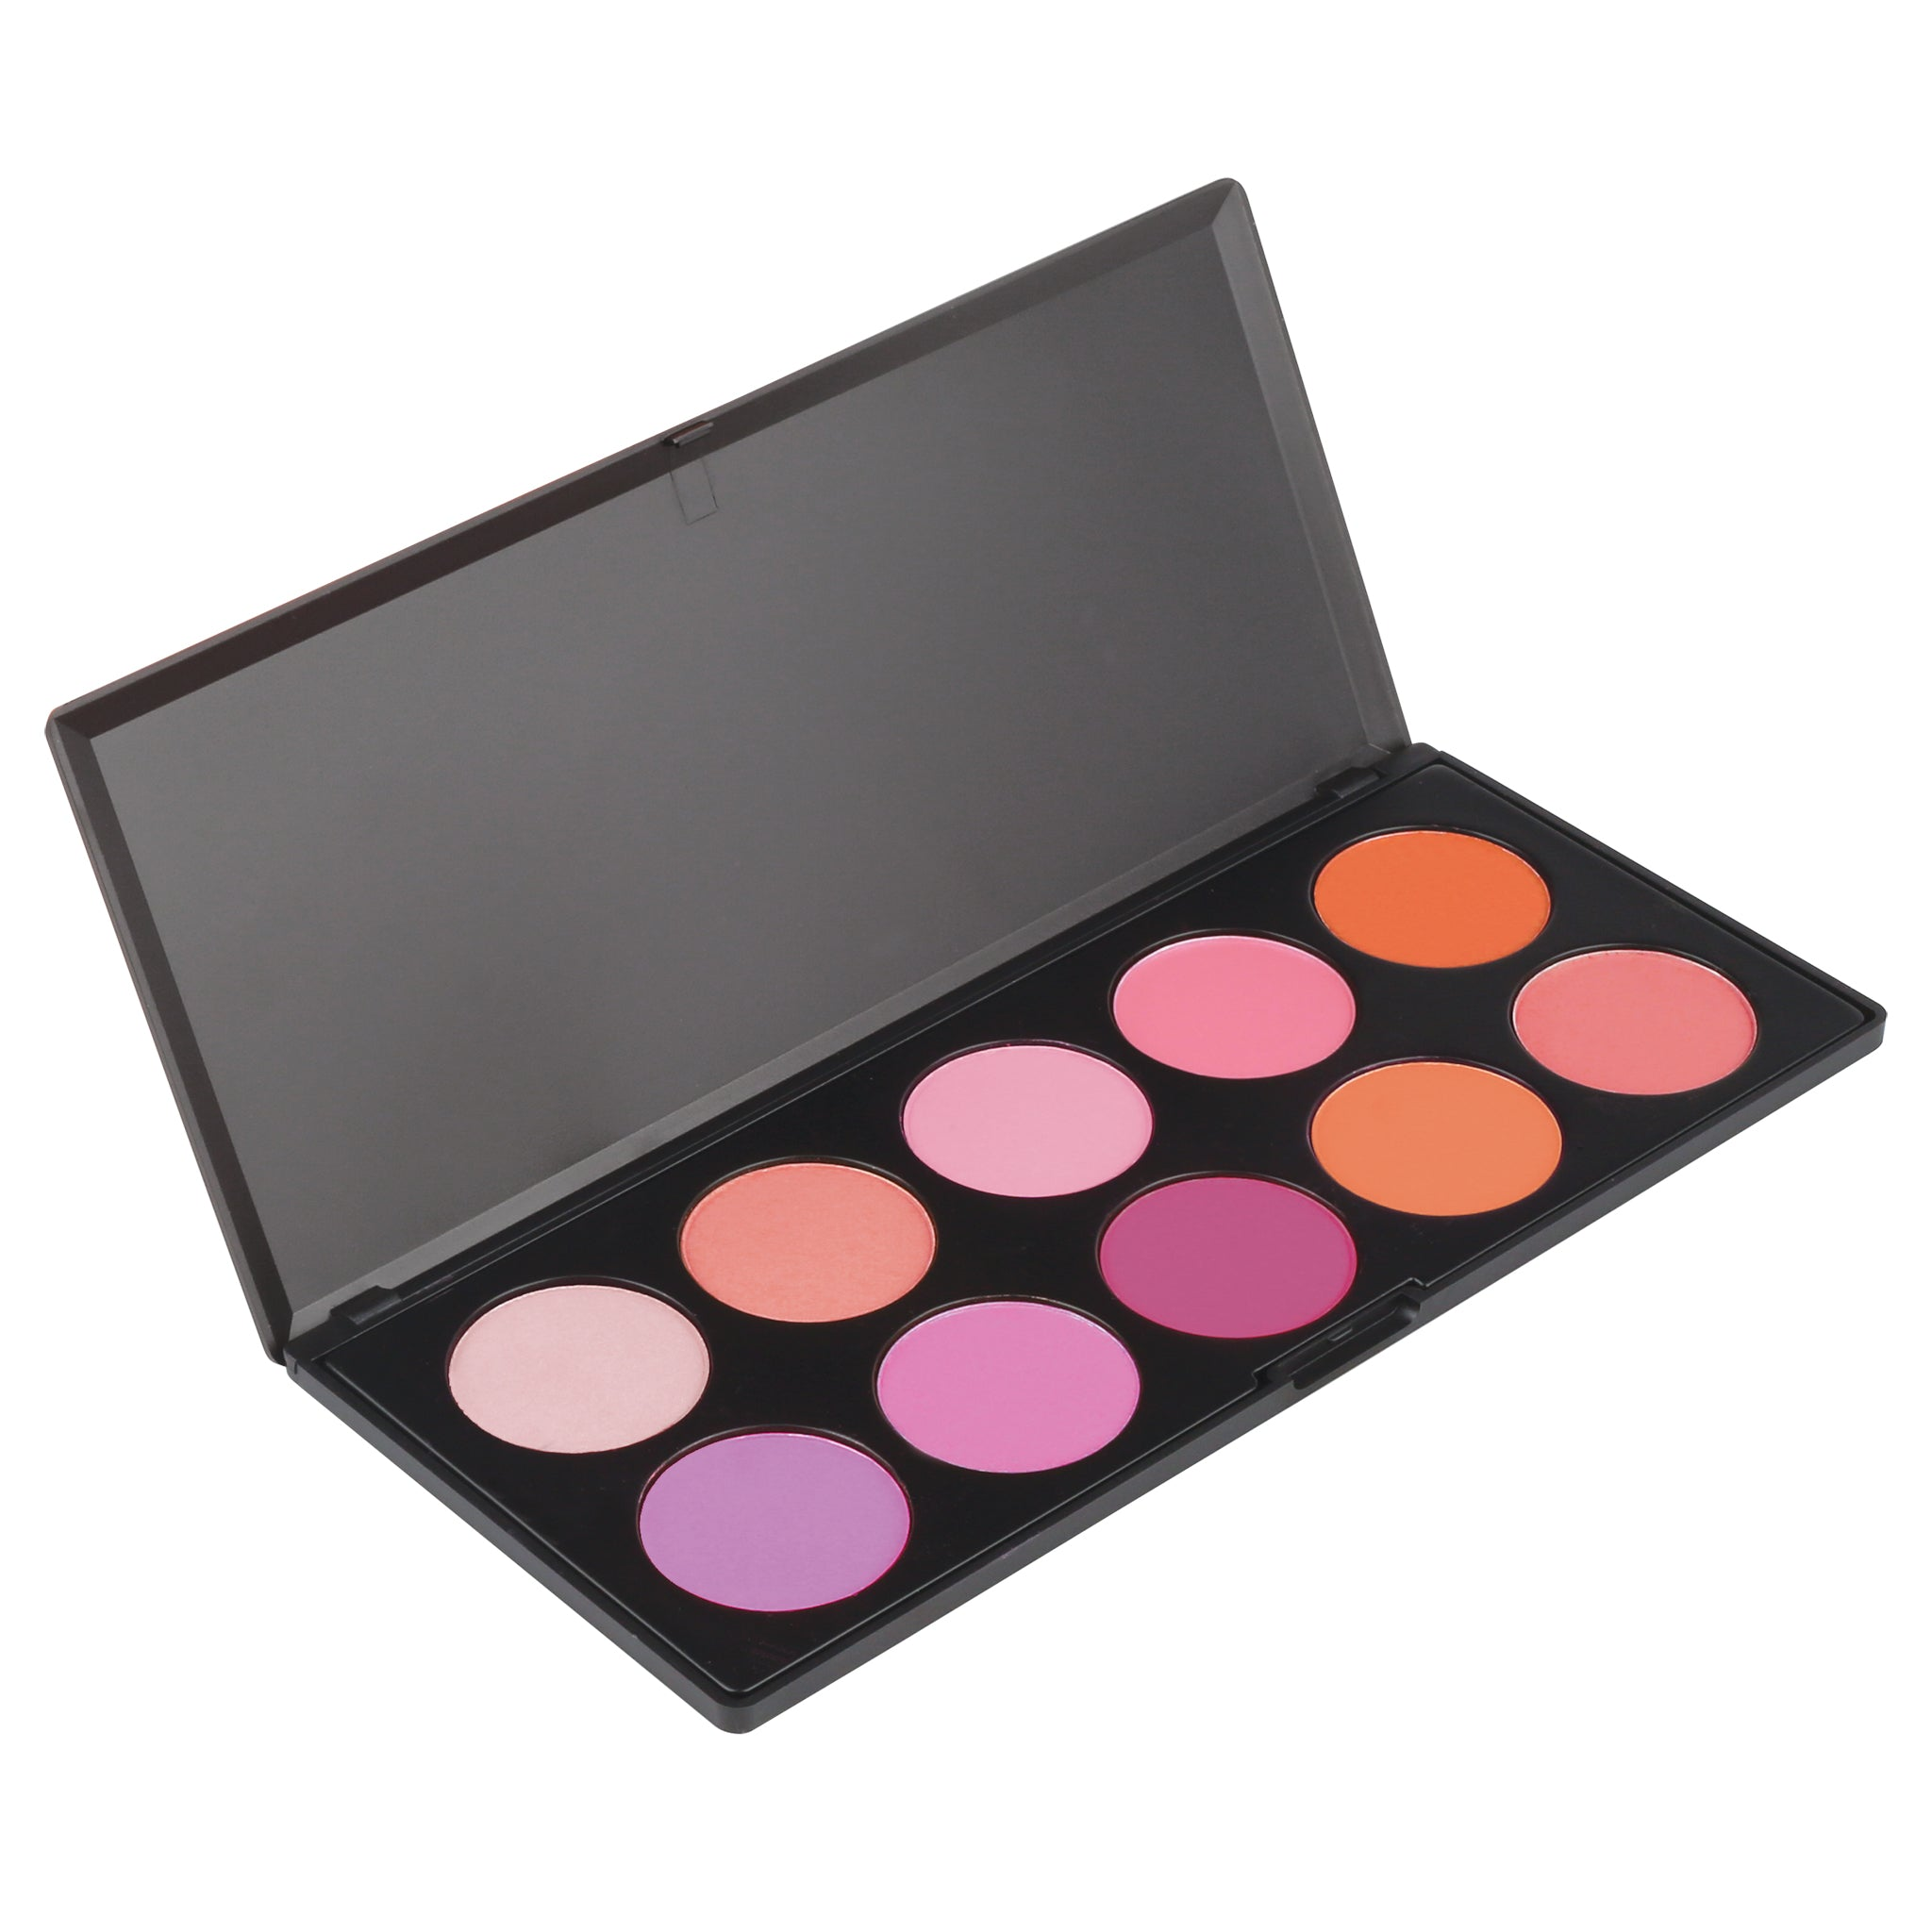 Coastal Scents coupon: 10 Color Blush Too Palette